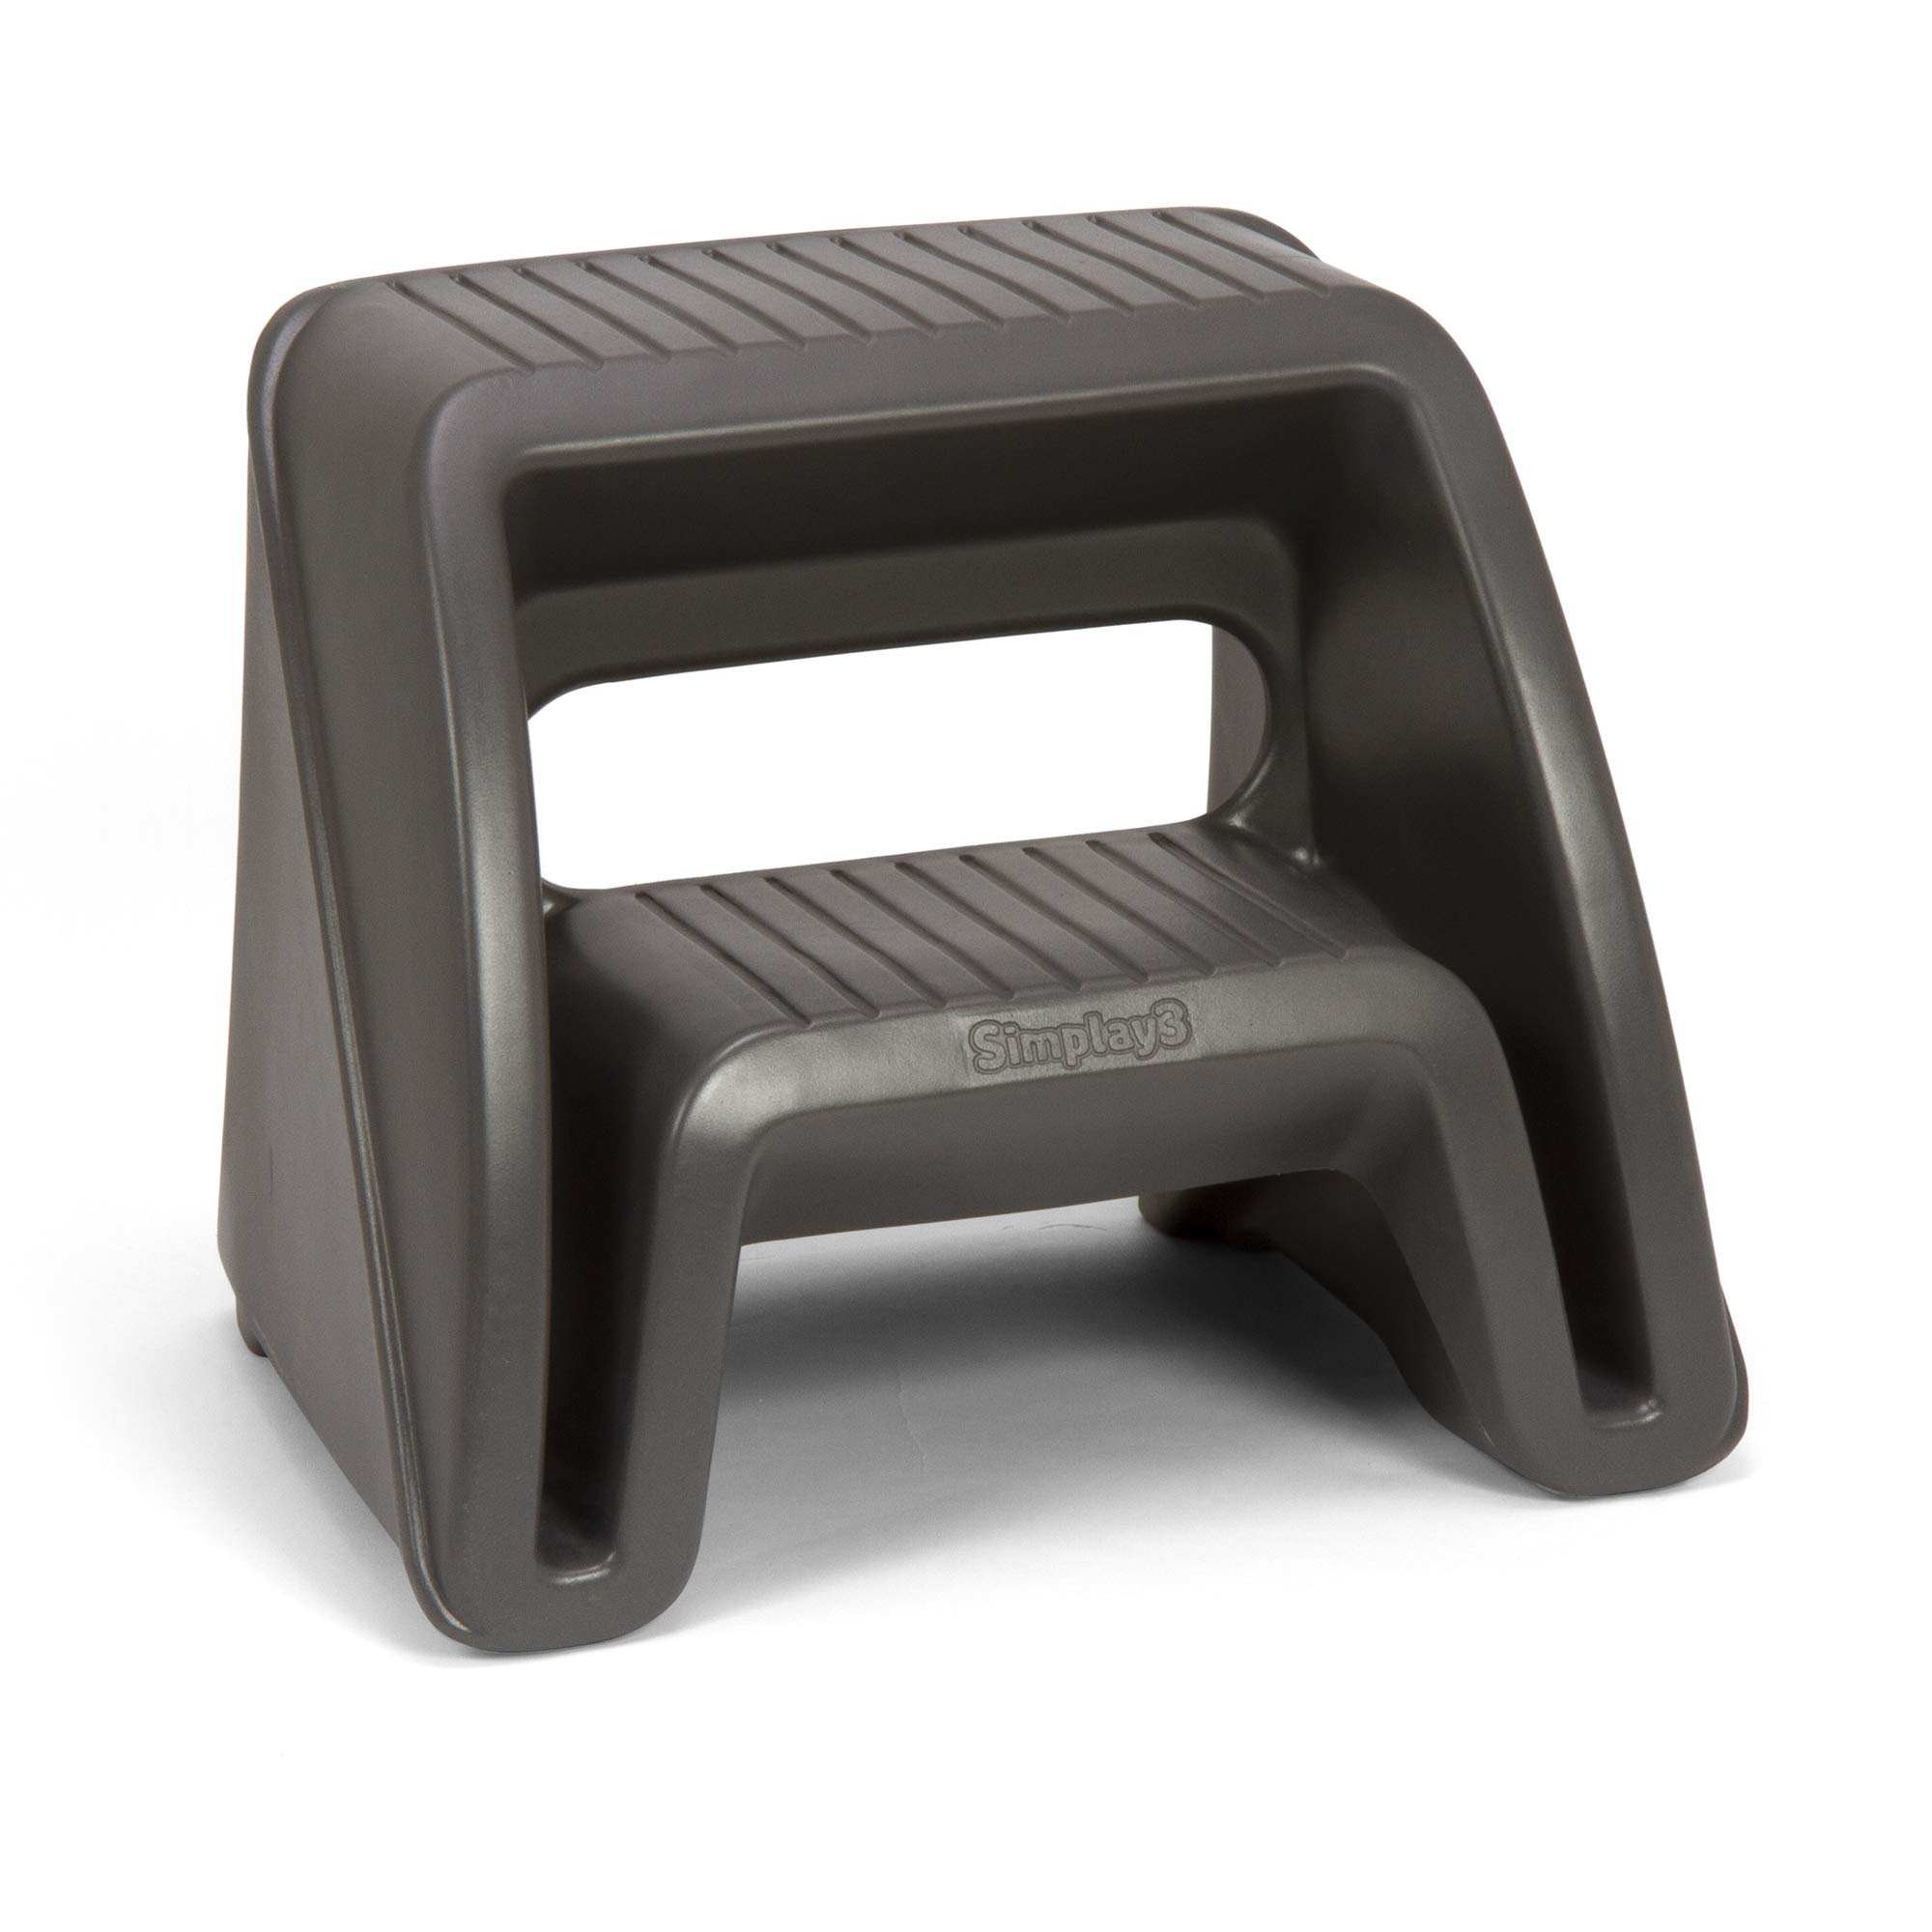 Simplay3 Handy Home 2-Step Plastic Stool 16 in. - Gray by Simplay3